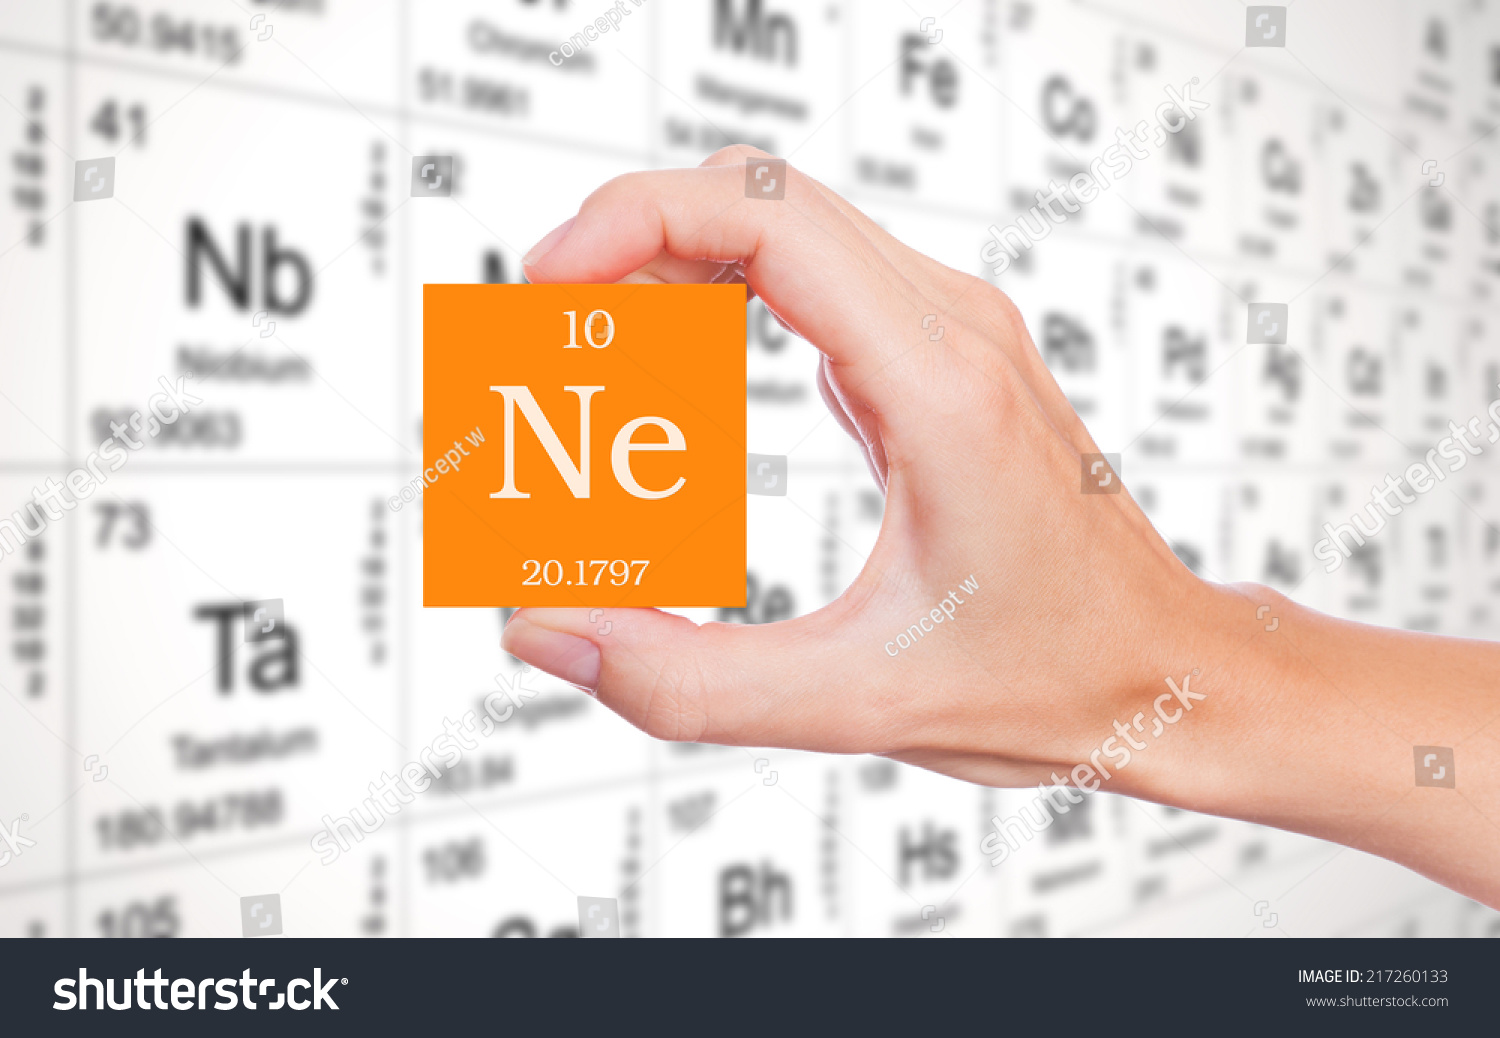 Neon symbol handheld front periodic table stock photo 217260133 neon symbol handheld in front of the periodic table buycottarizona Images